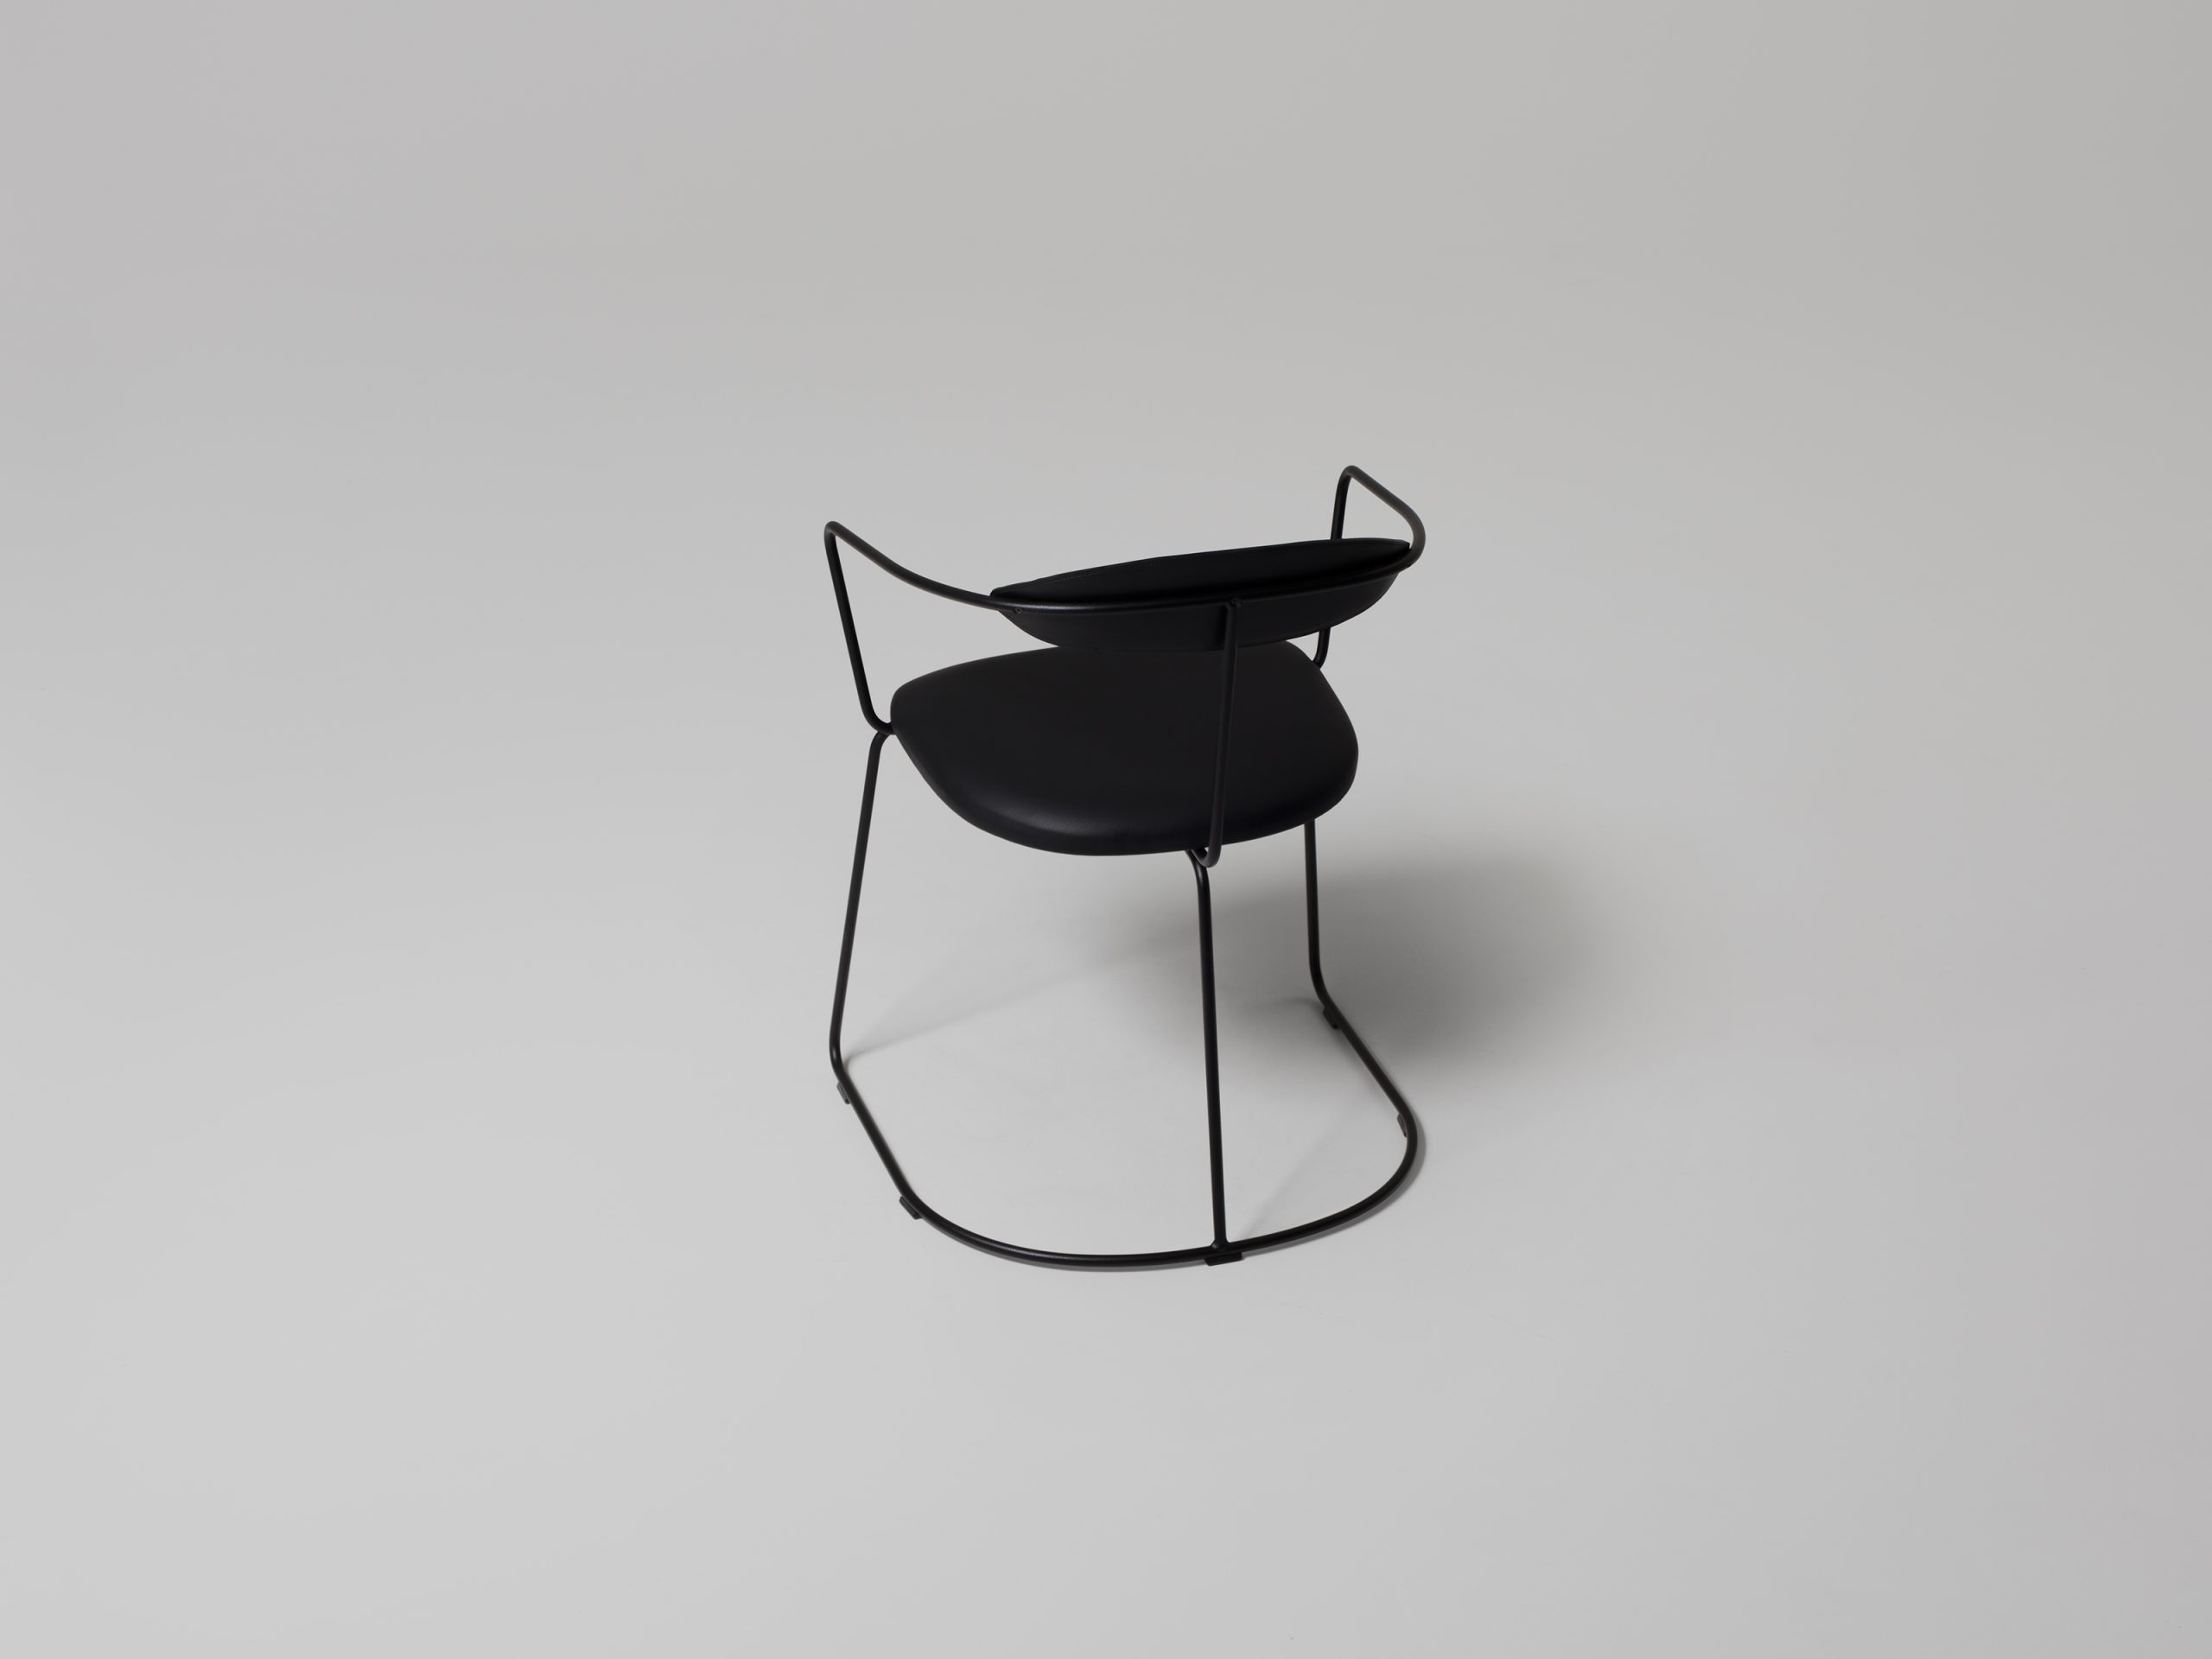 https://www.minustio.se/wp-content/uploads/2021/03/Ghost-Chair-Plus1-scaled.jpg